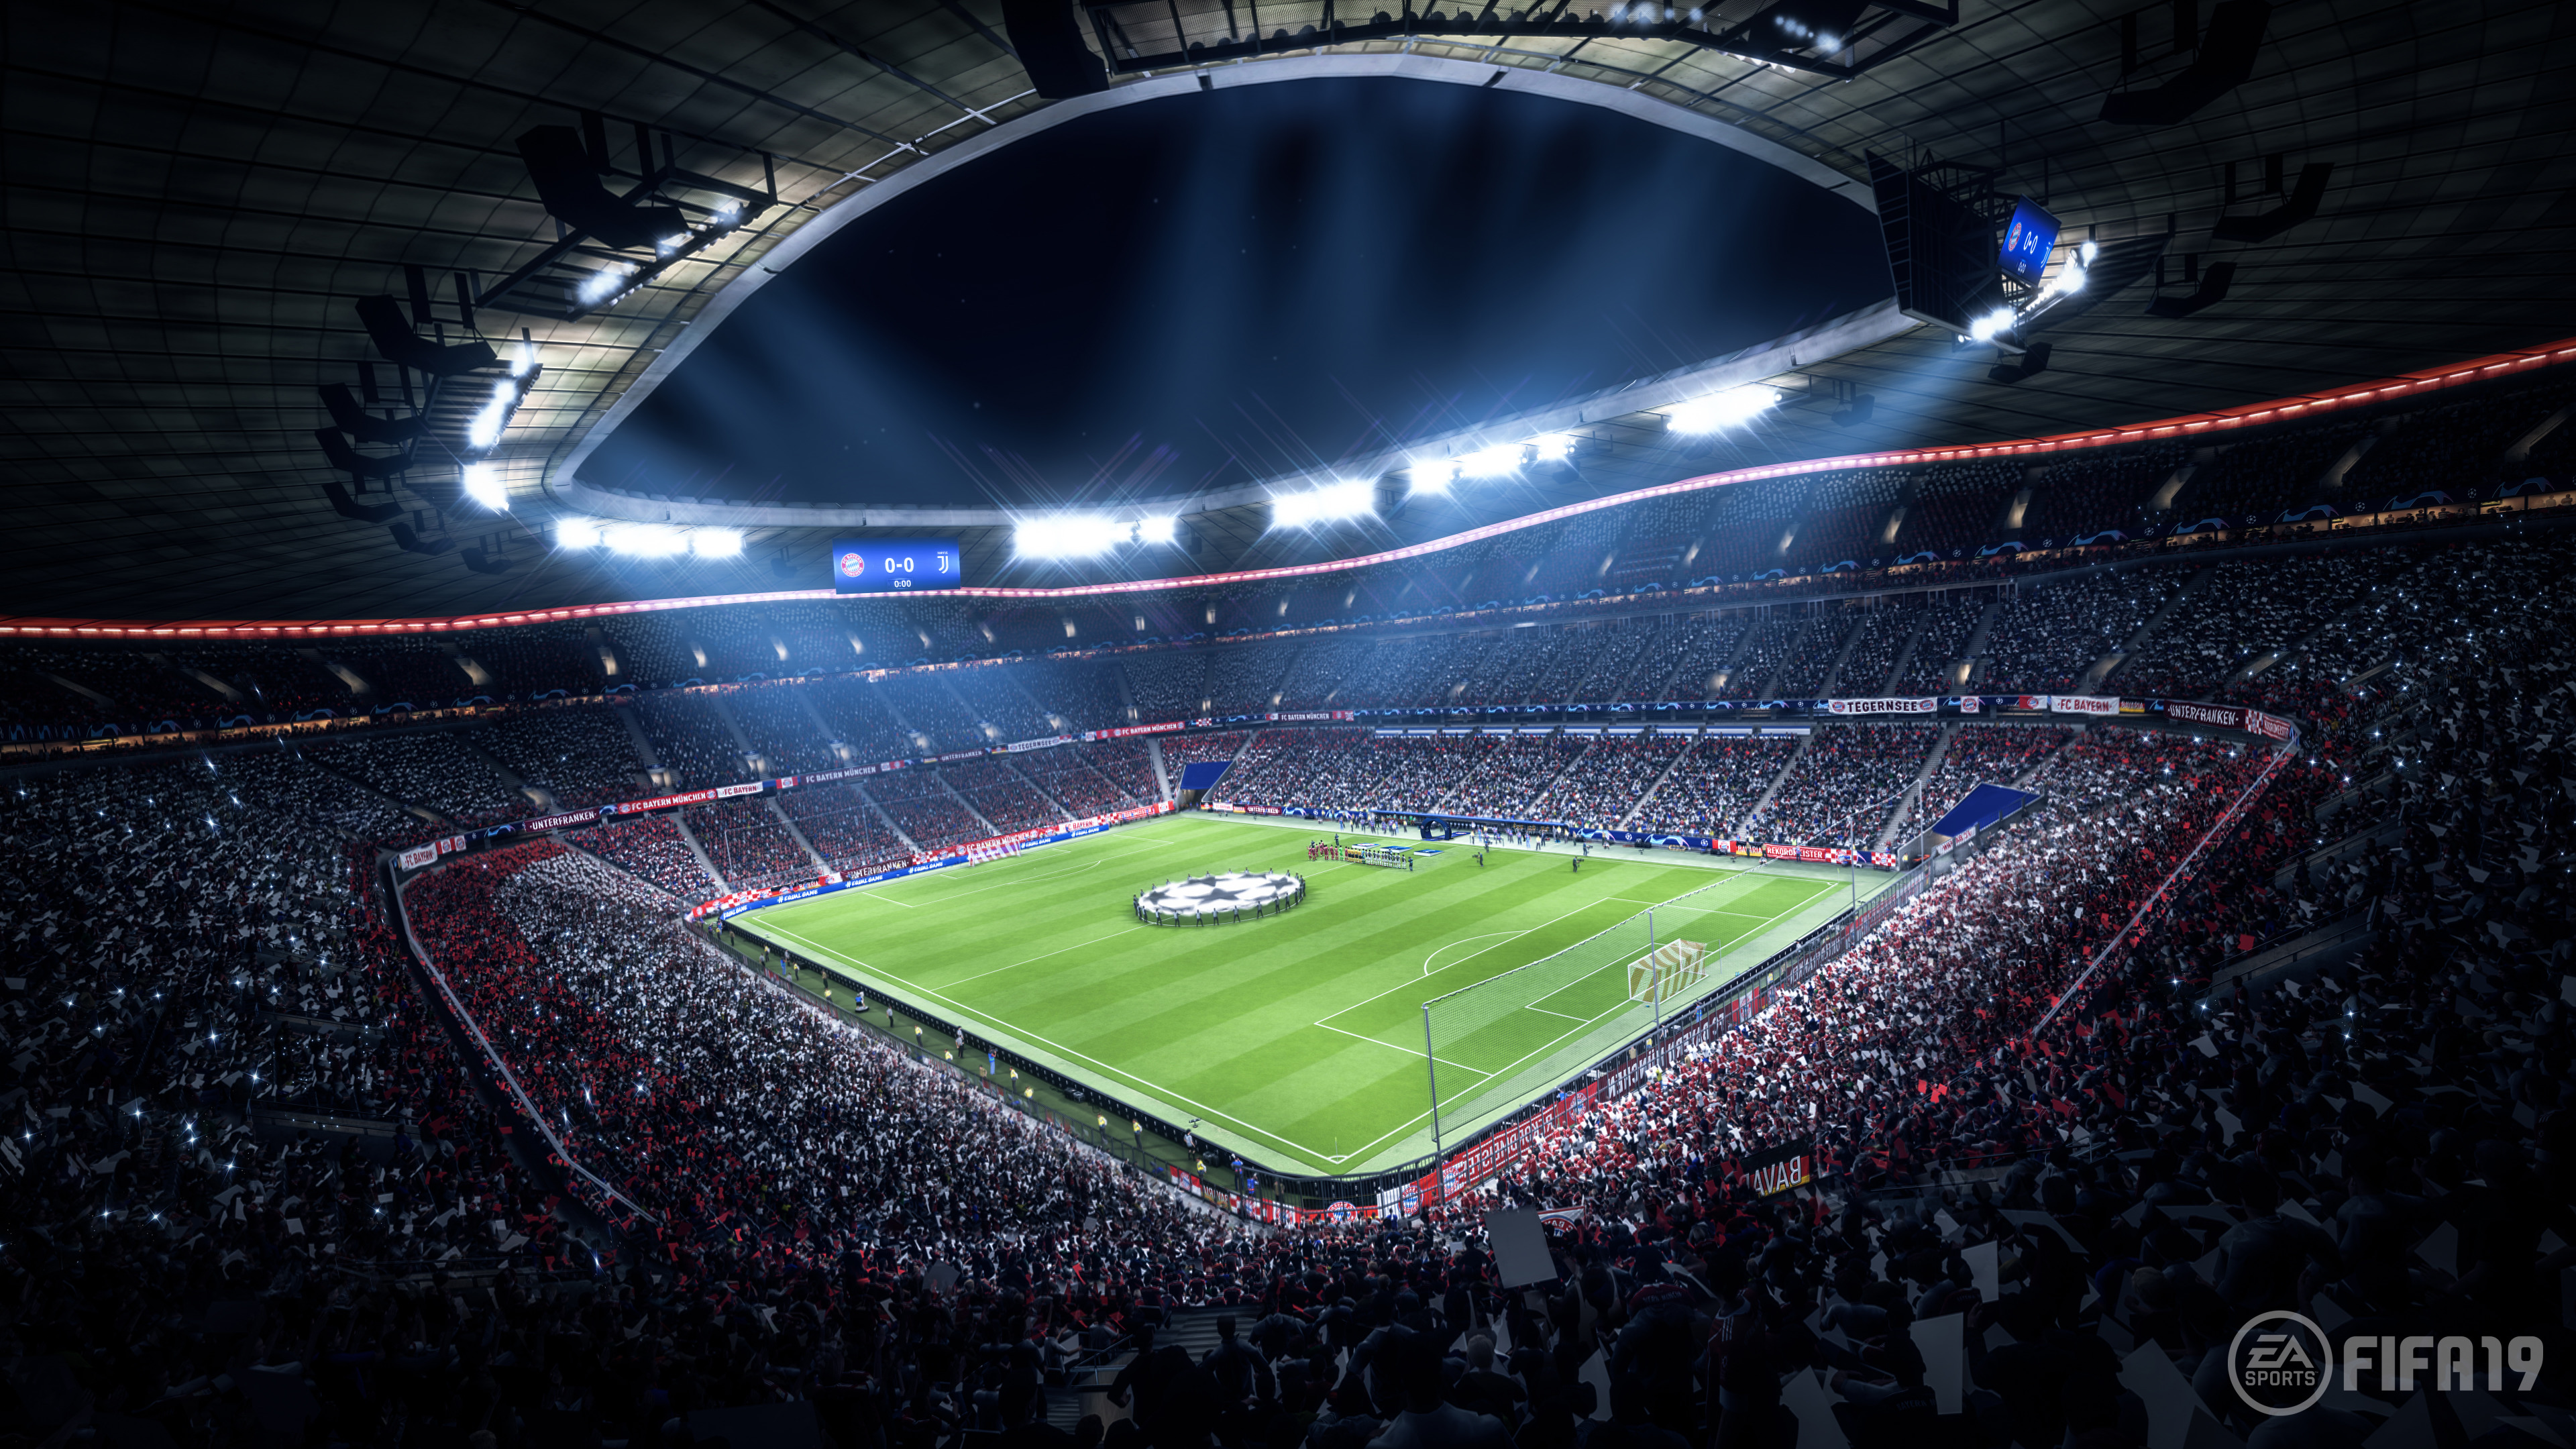 Fifa 19 Stadium 4k Hd Games 4k Wallpapers Images Backgrounds